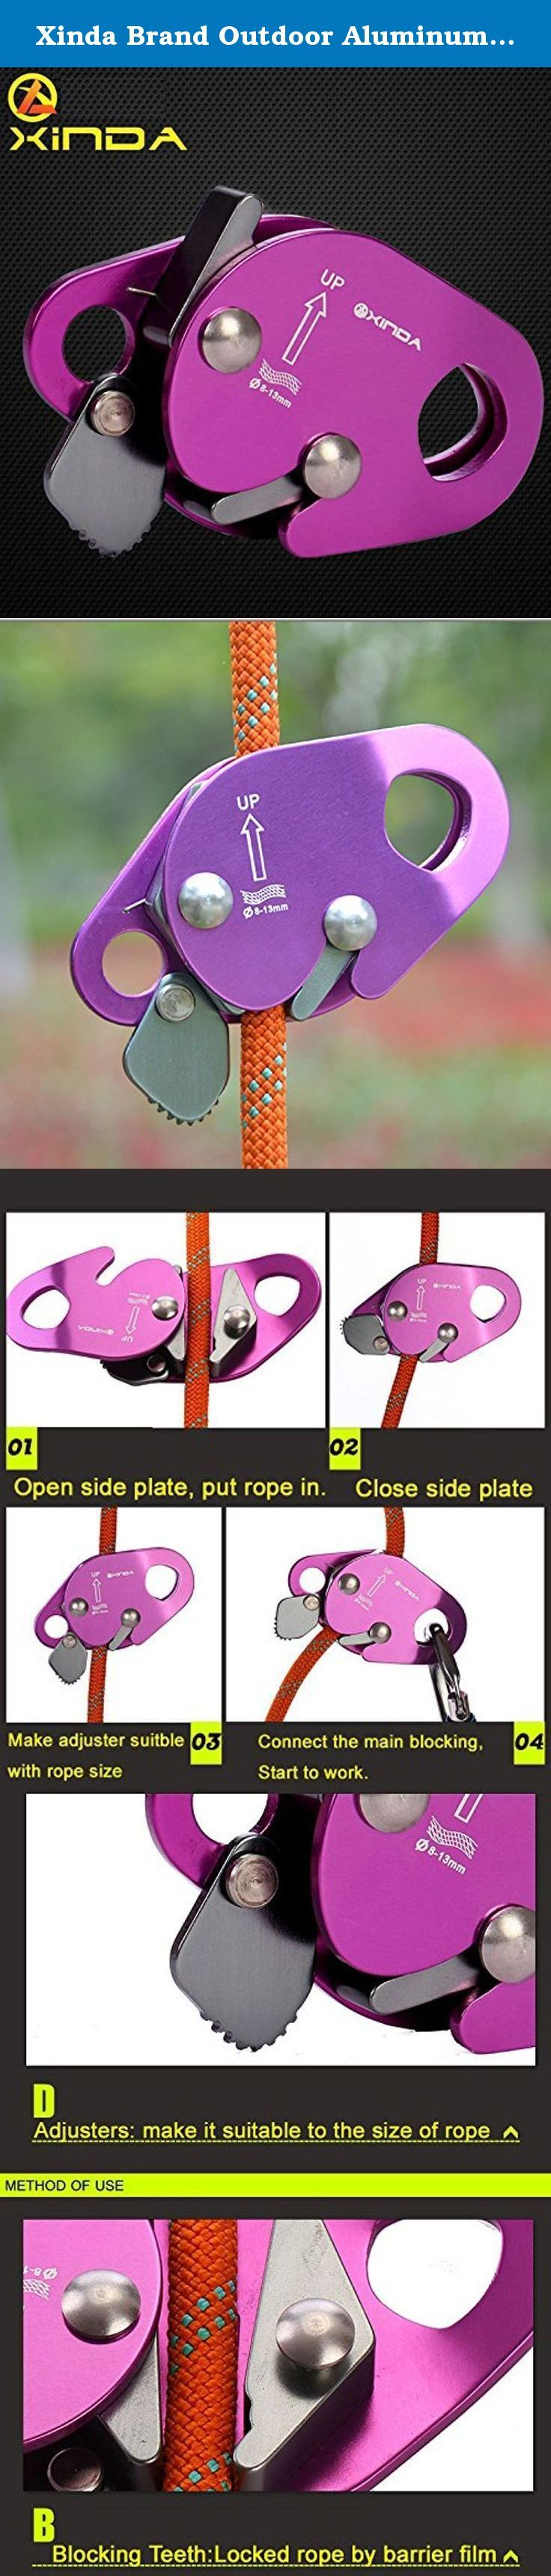 Xinda Brand Outdoor Aluminum Rock Climbing Gear Rope Grab for Mountaineering, Fire Rescue, Aloft work. Name: XINDA Rope Grab Self-lock equipment Material: Hot wrought aluminum magnesium alloy Size: 11.2cm length, 6.5cm width Weight: 168g Suitable rope: 8-13mm diameter rope Features: Hot wrought aluminum magnesium alloy material. Suitable for 8-13mm diameter rope. 11.2cm length, 6.5cm width, 168g only. Connecting hole to connect the main lock. It's role is blocking teeth stuck ropes by…